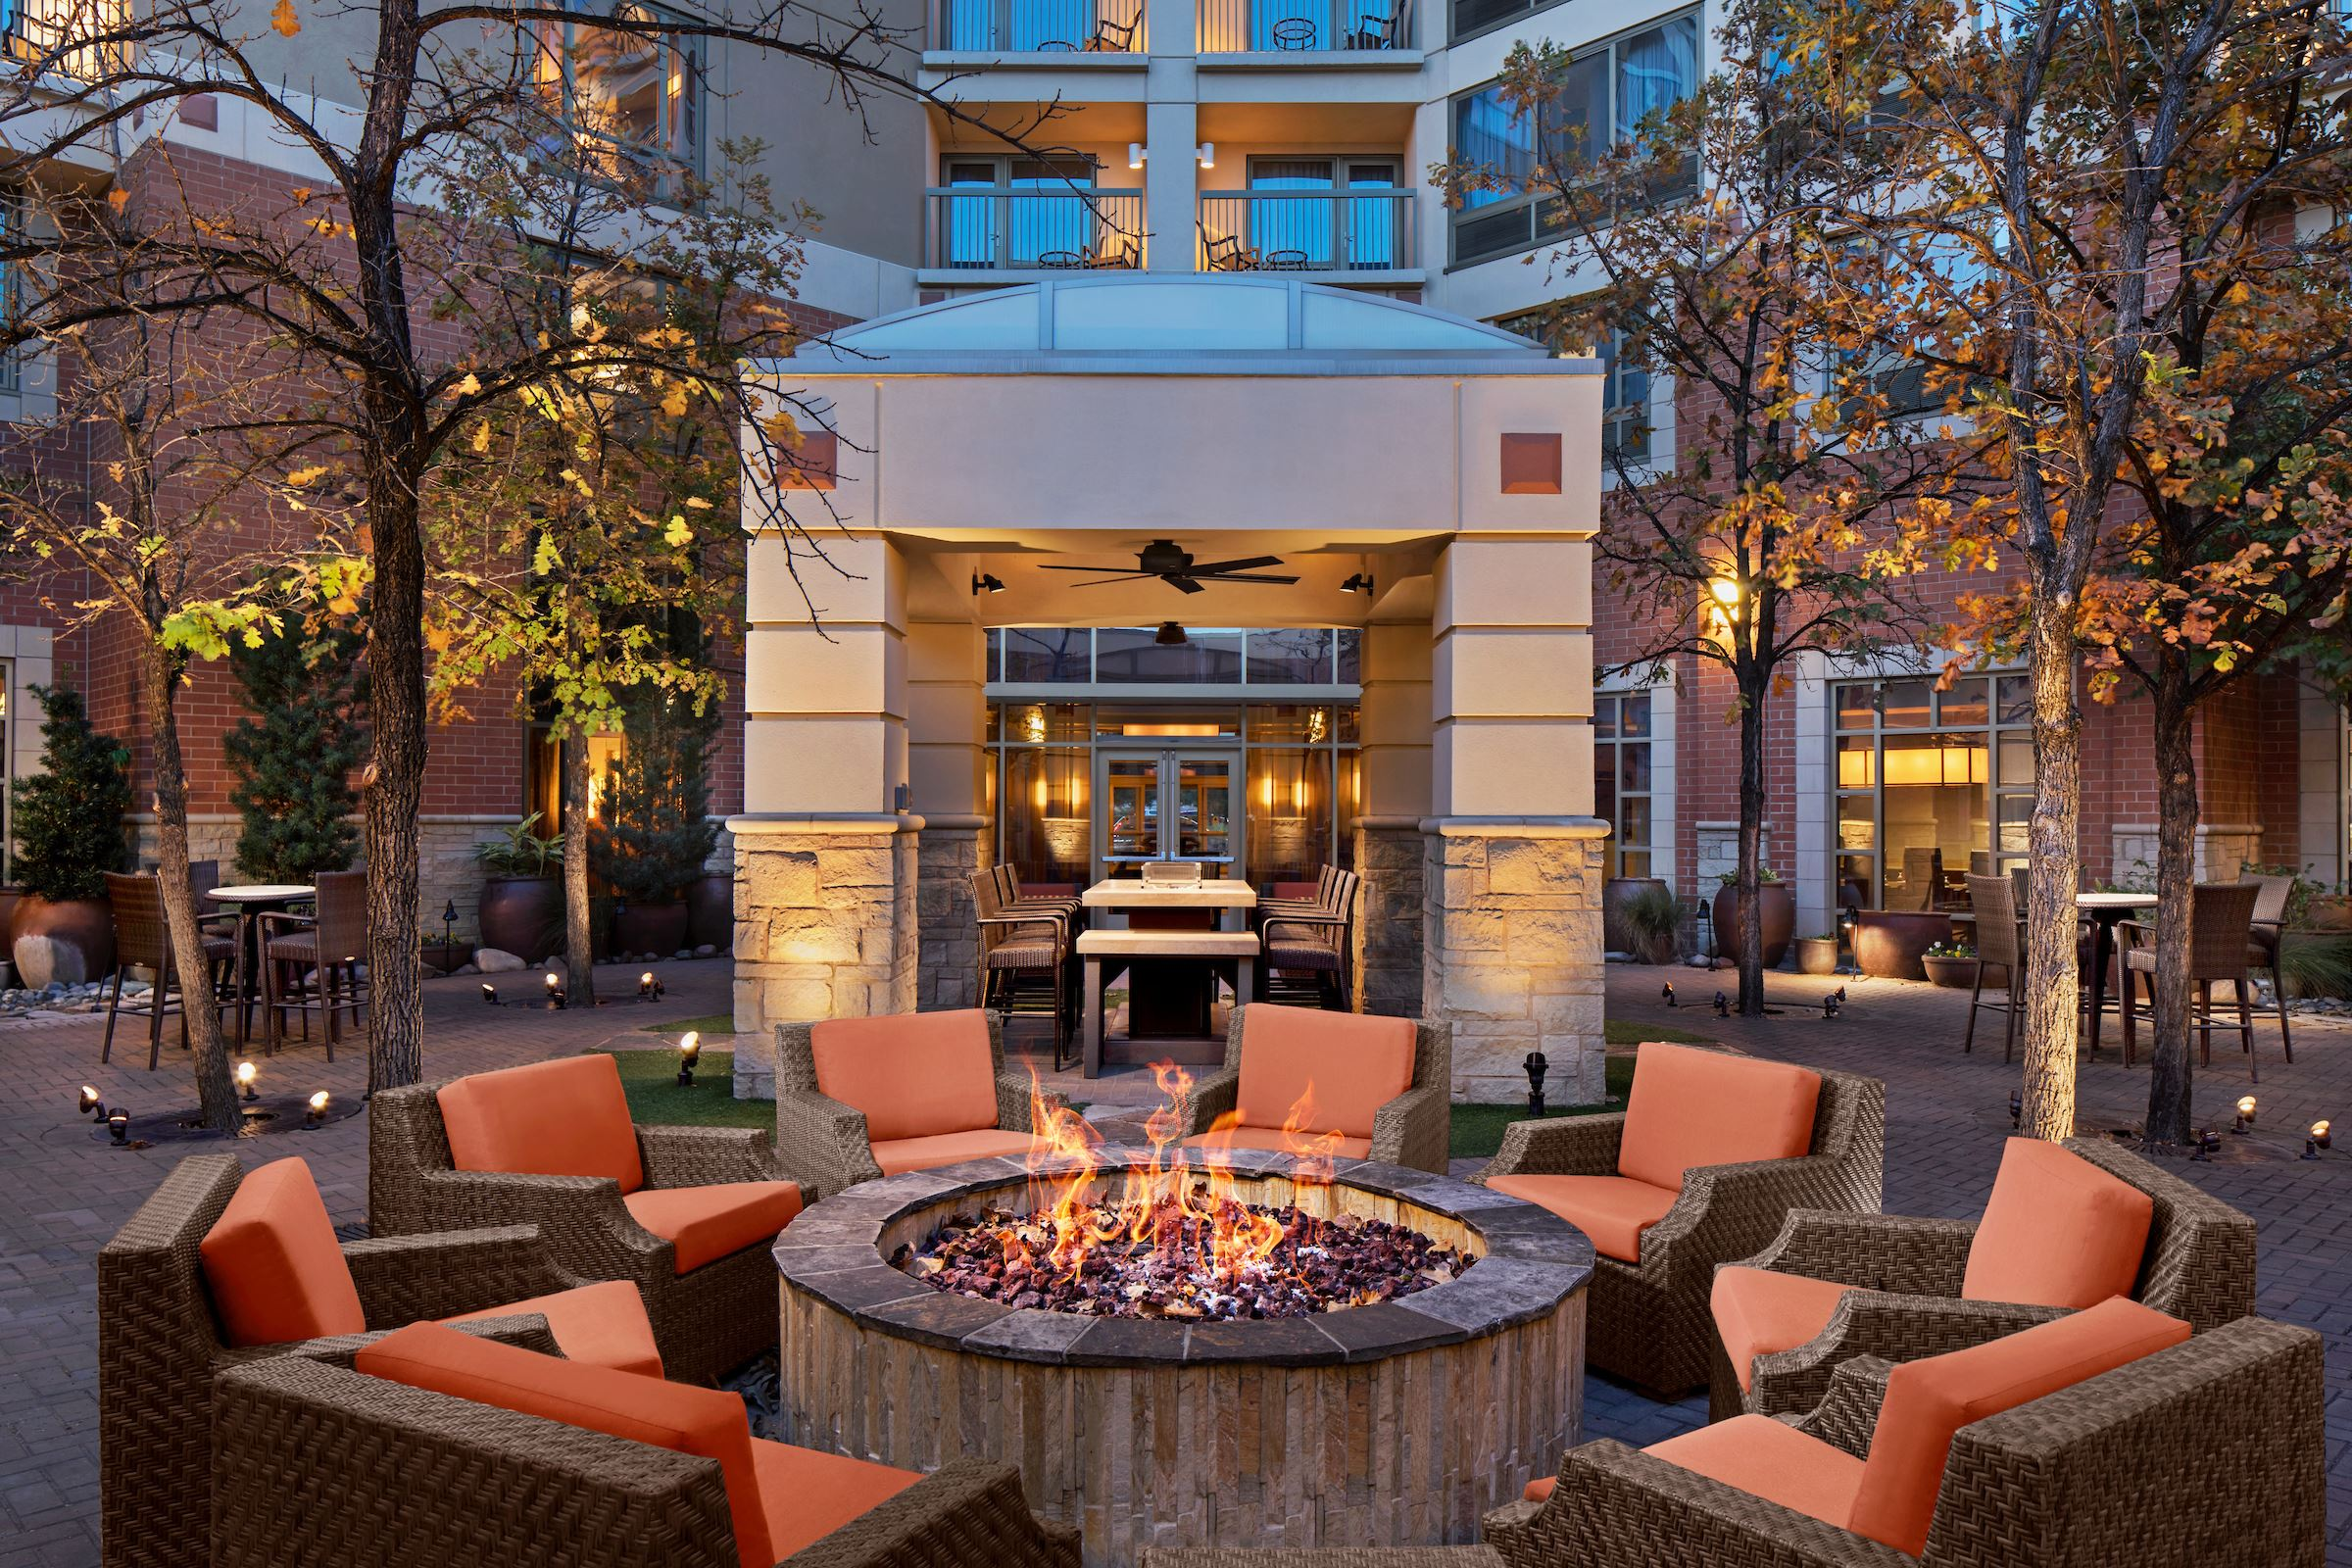 COURTYARD ALLEN DALLAS TX Fire pit